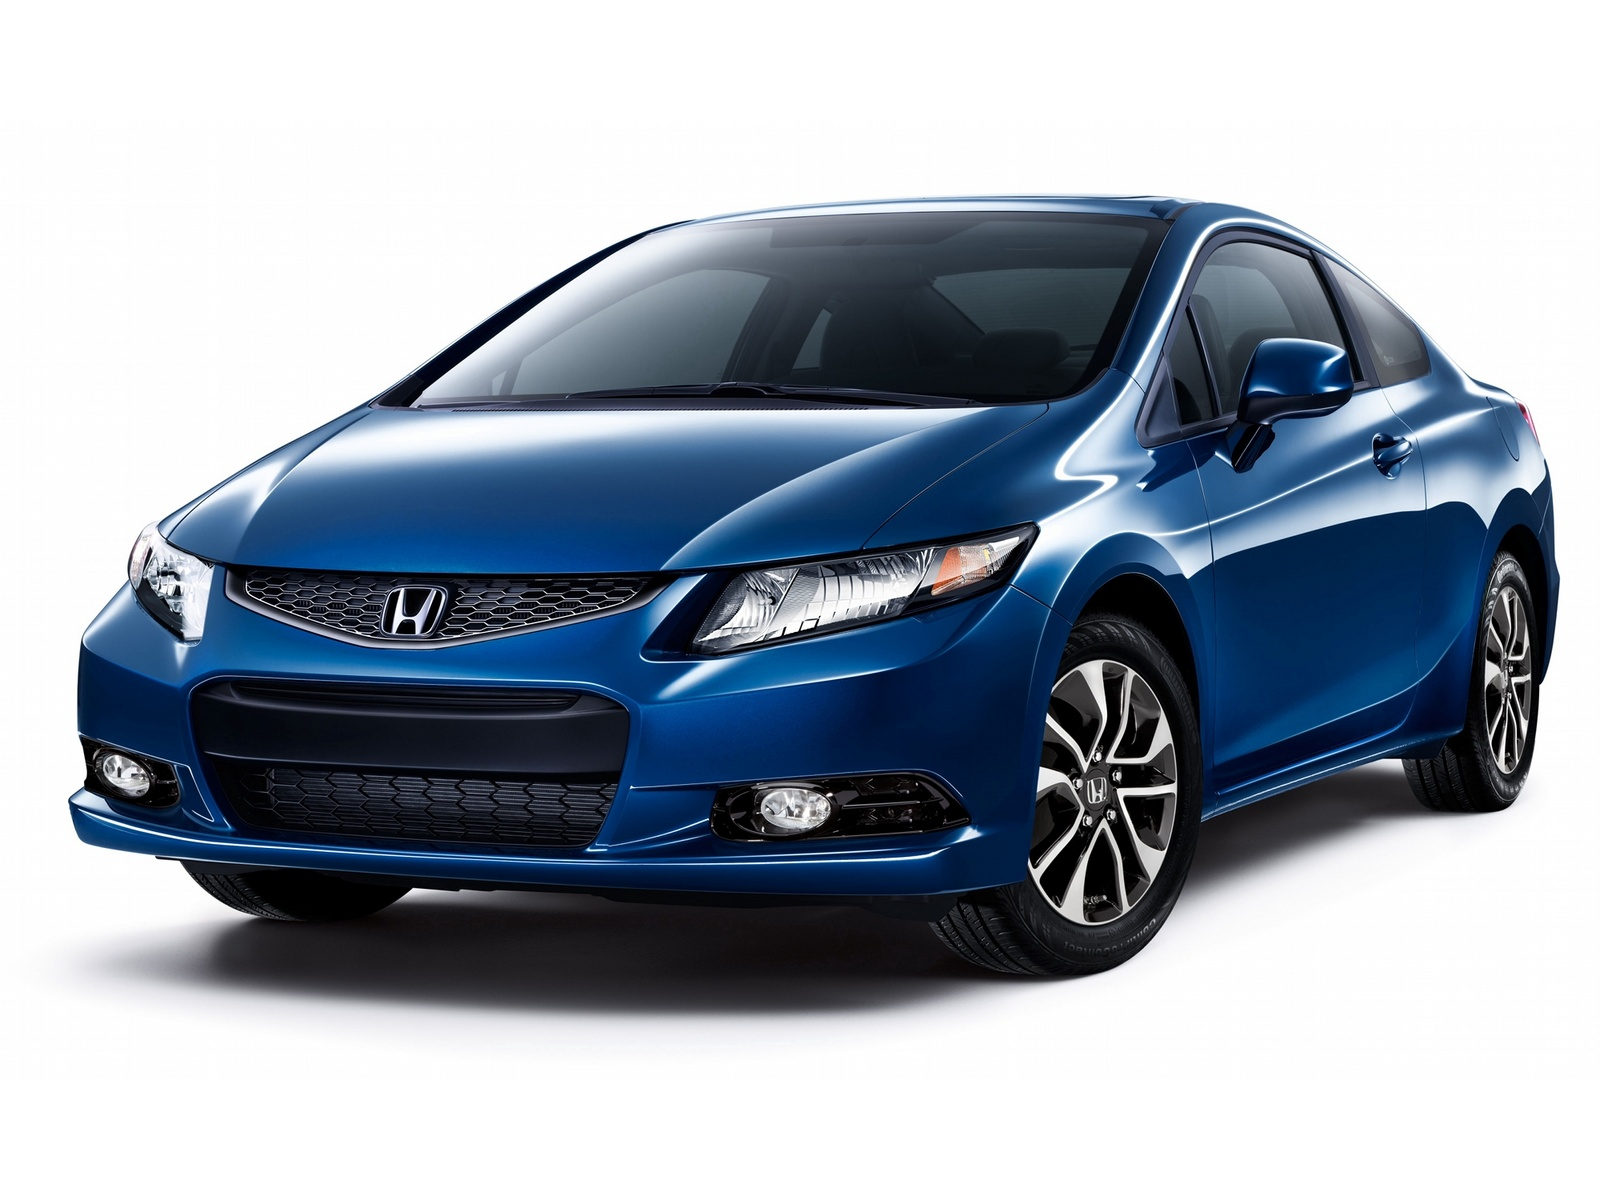 Home / Research / Honda / Civic Coupe / 2013